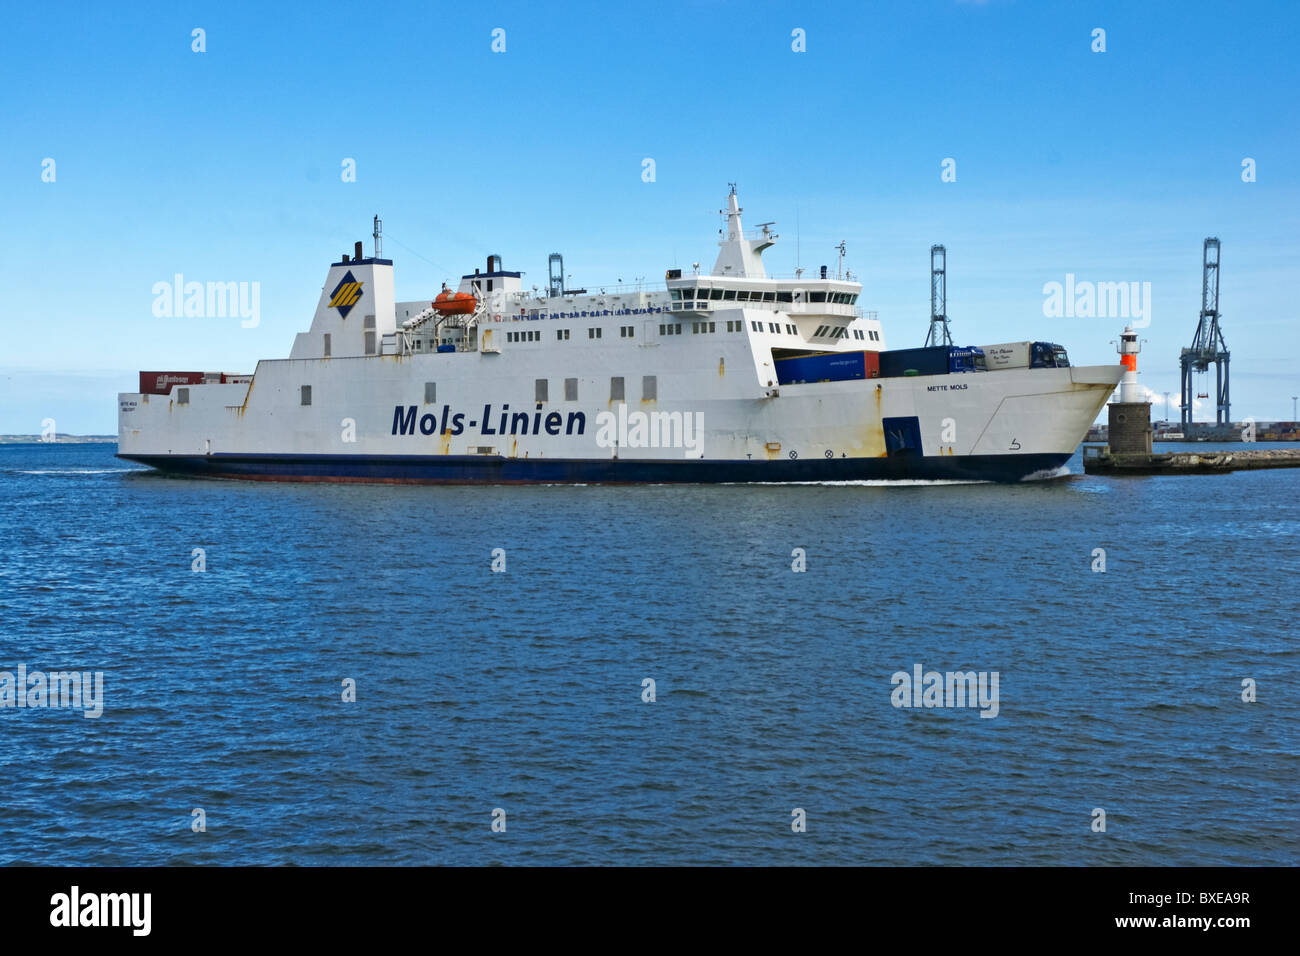 Mols-Linien car and passenger ferry Mette Mols arriving at Aarhus Harbour from Kalundborg in Denmark - Stock Image